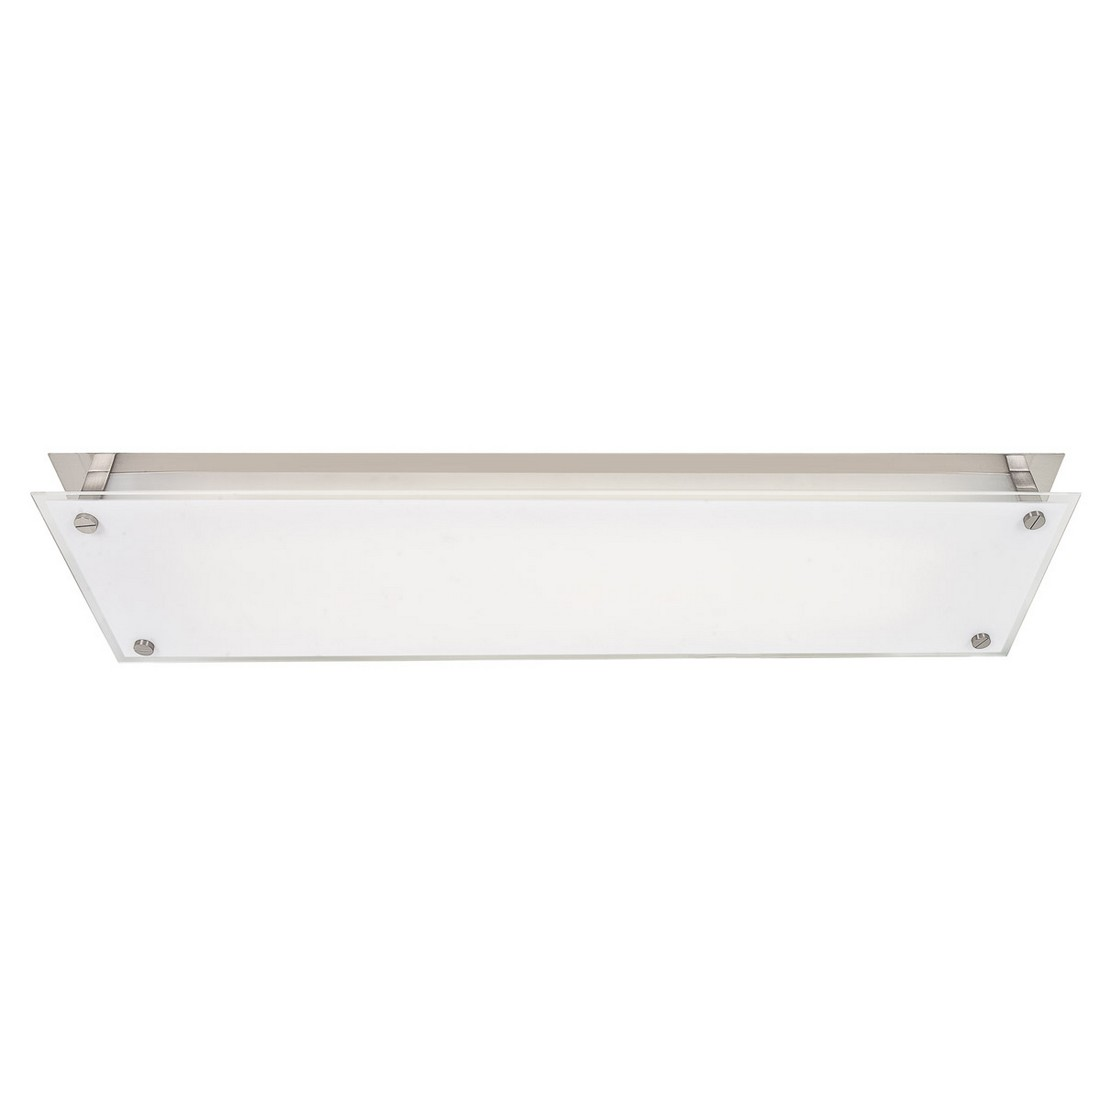 Access Lighting Vision Frosted Ceiling/Wall Sconce in Brushed Steel